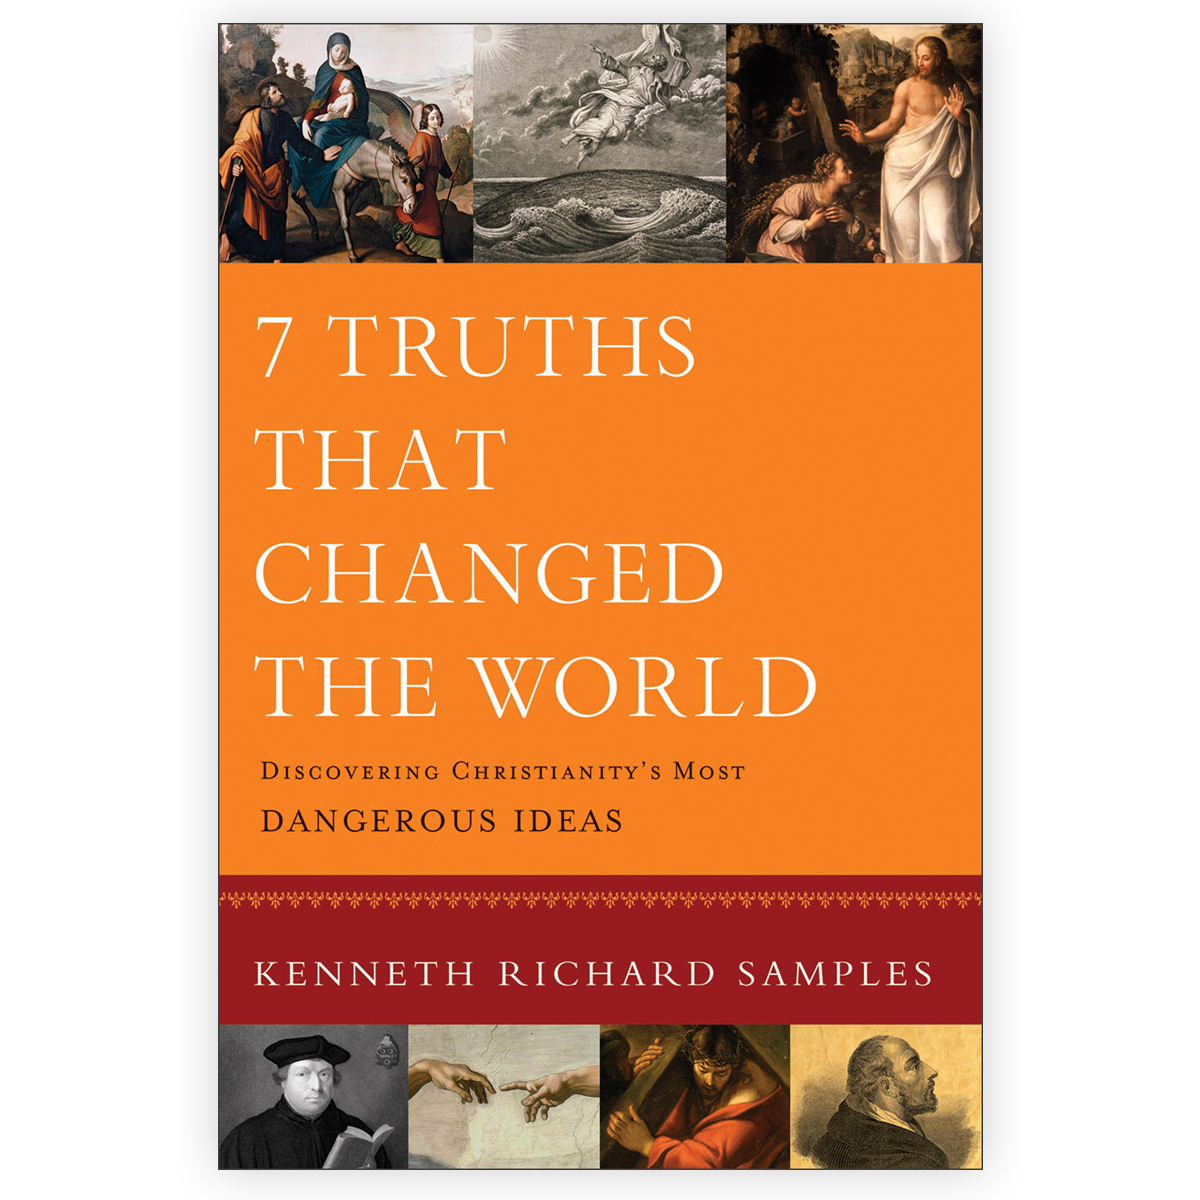 7 Truths That Changed the World Image